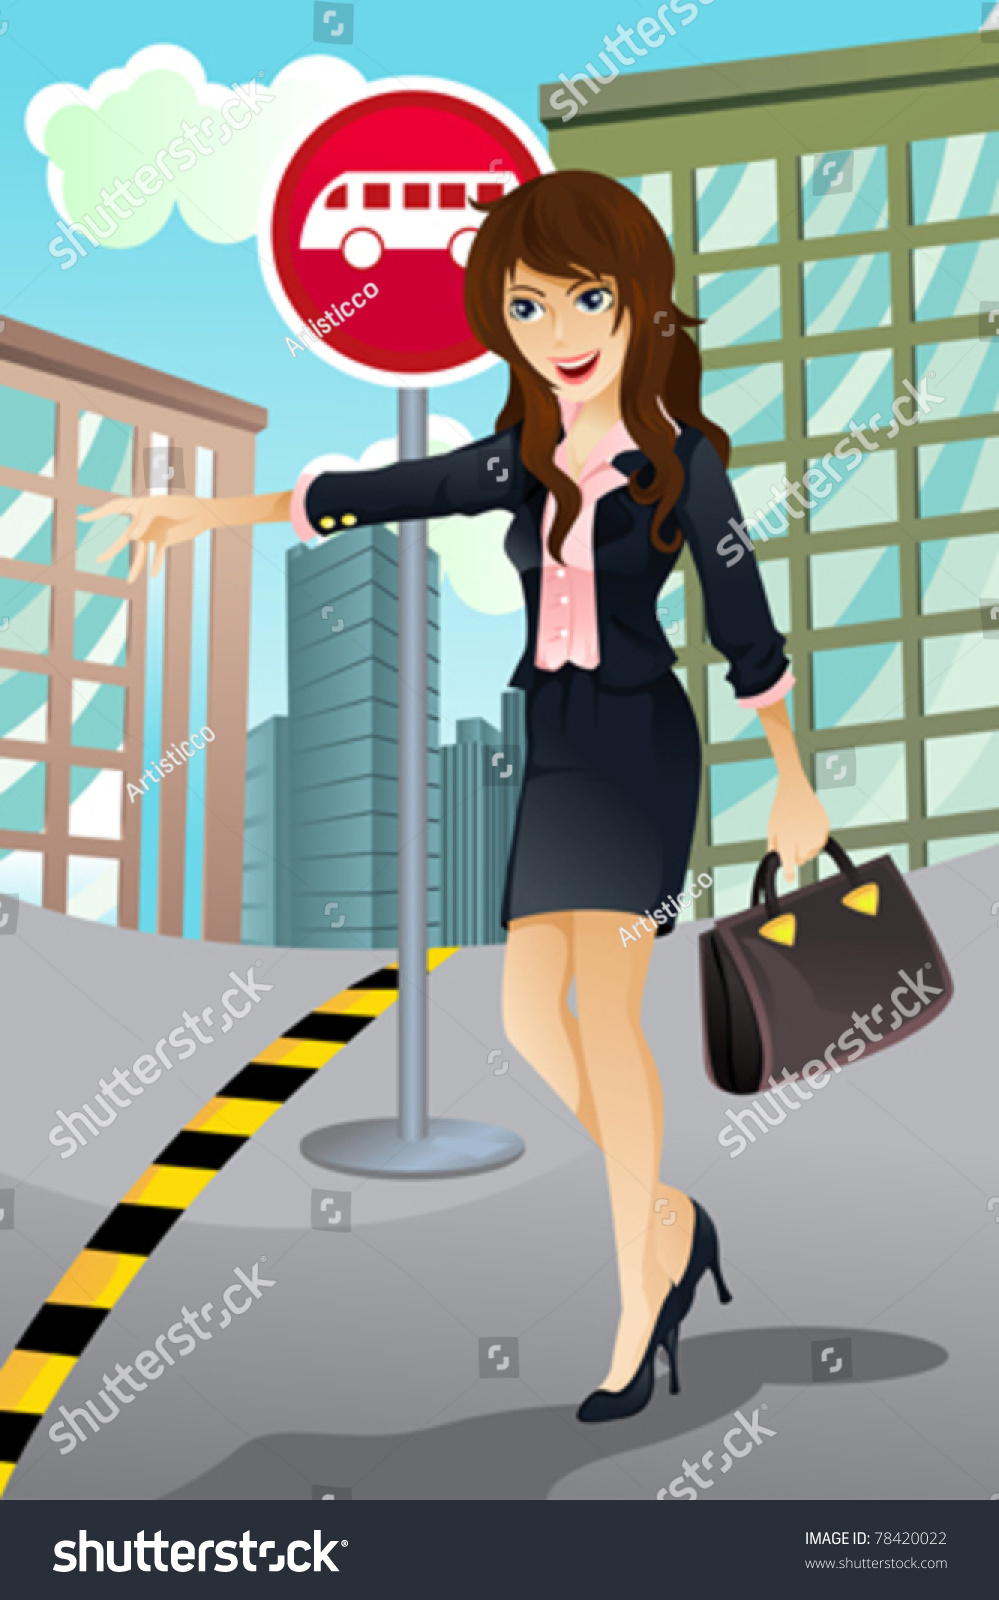 Go To Www Bing Com1 Microsoft Way Redmond: A Vector Illustration Of A Beautiful Woman Waiting For A